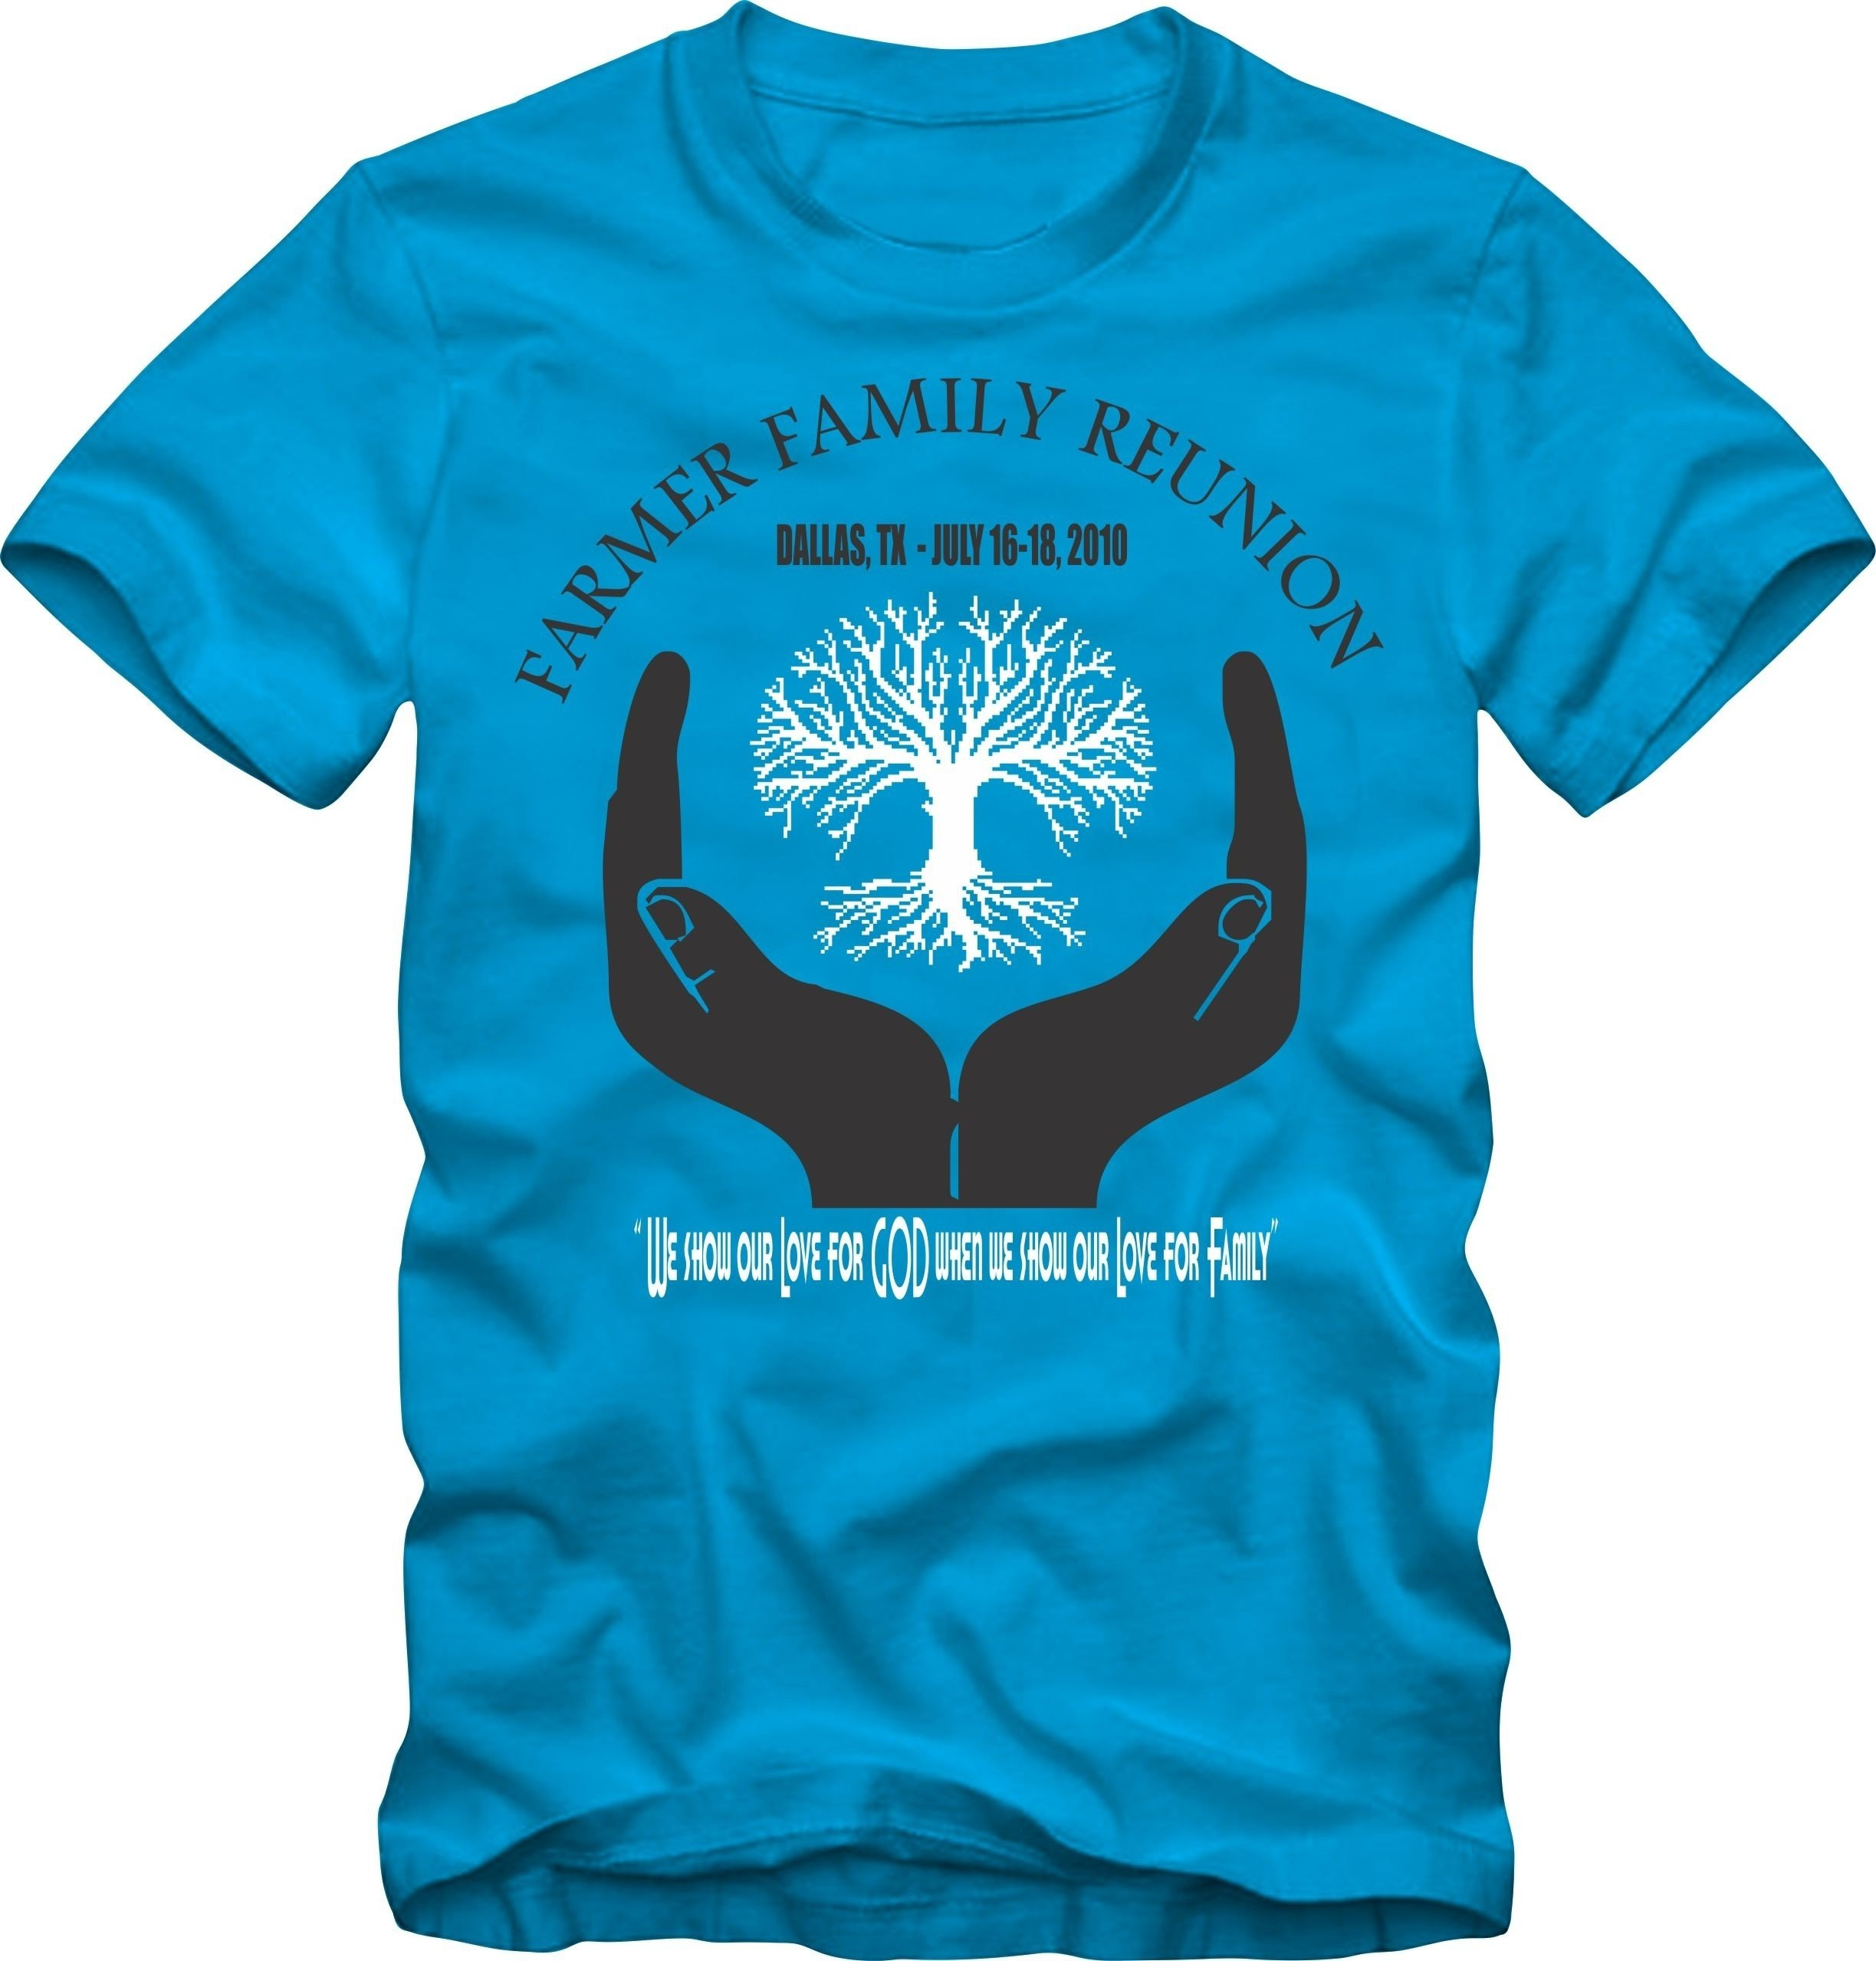 10 Most Popular Family Reunion T Shirt Designs Ideas family reunion shirt design ideas family reunion t shirts dallas 1 2021